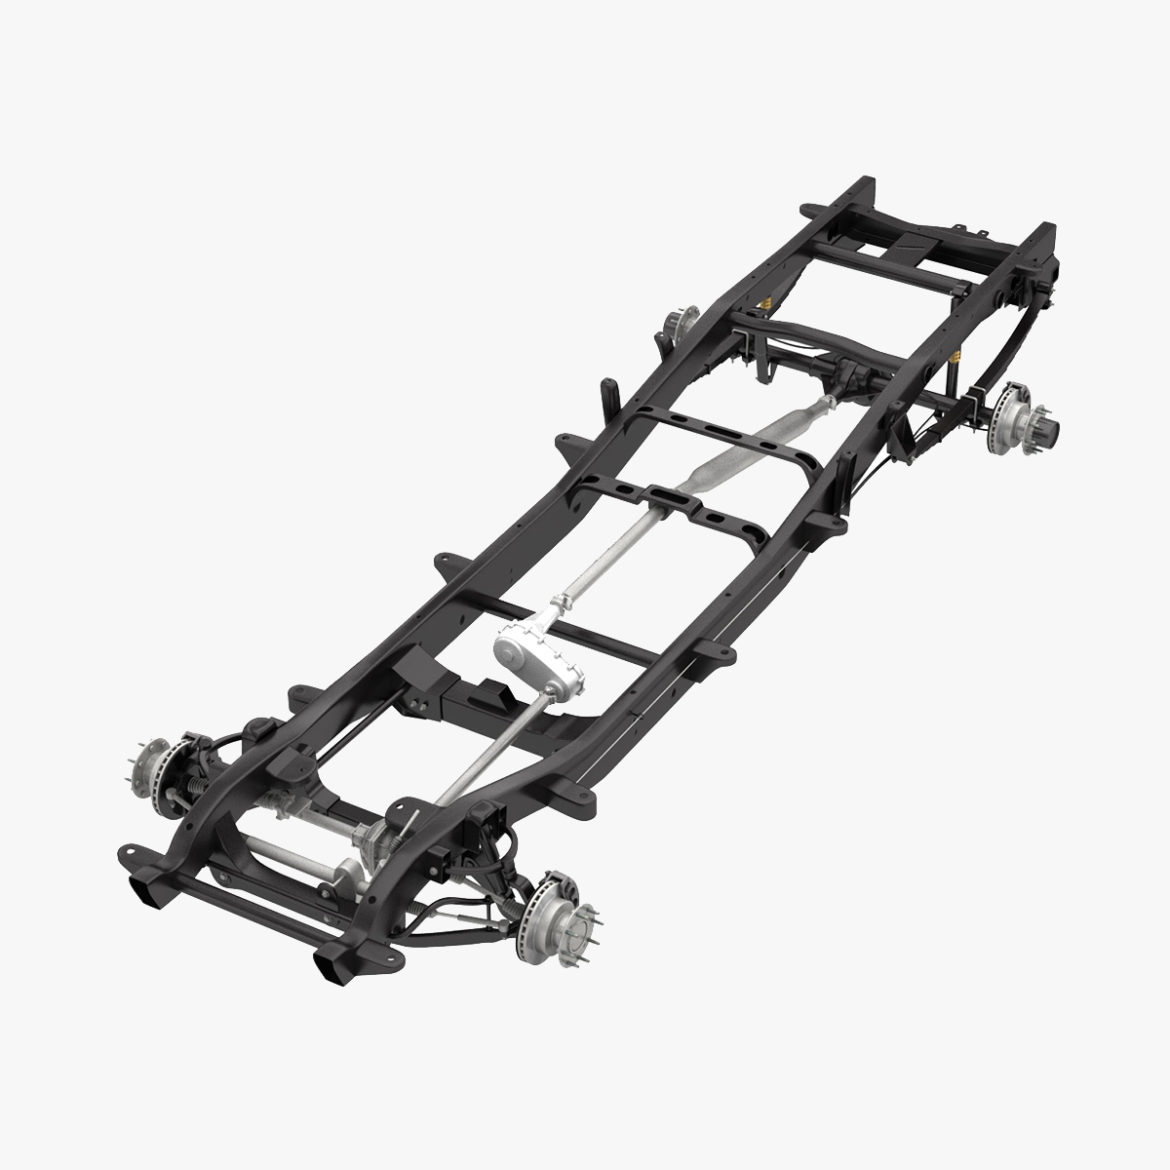 dually pickup truck chassis 4wd ifs 3d model 3ds max fbx blend obj 320639